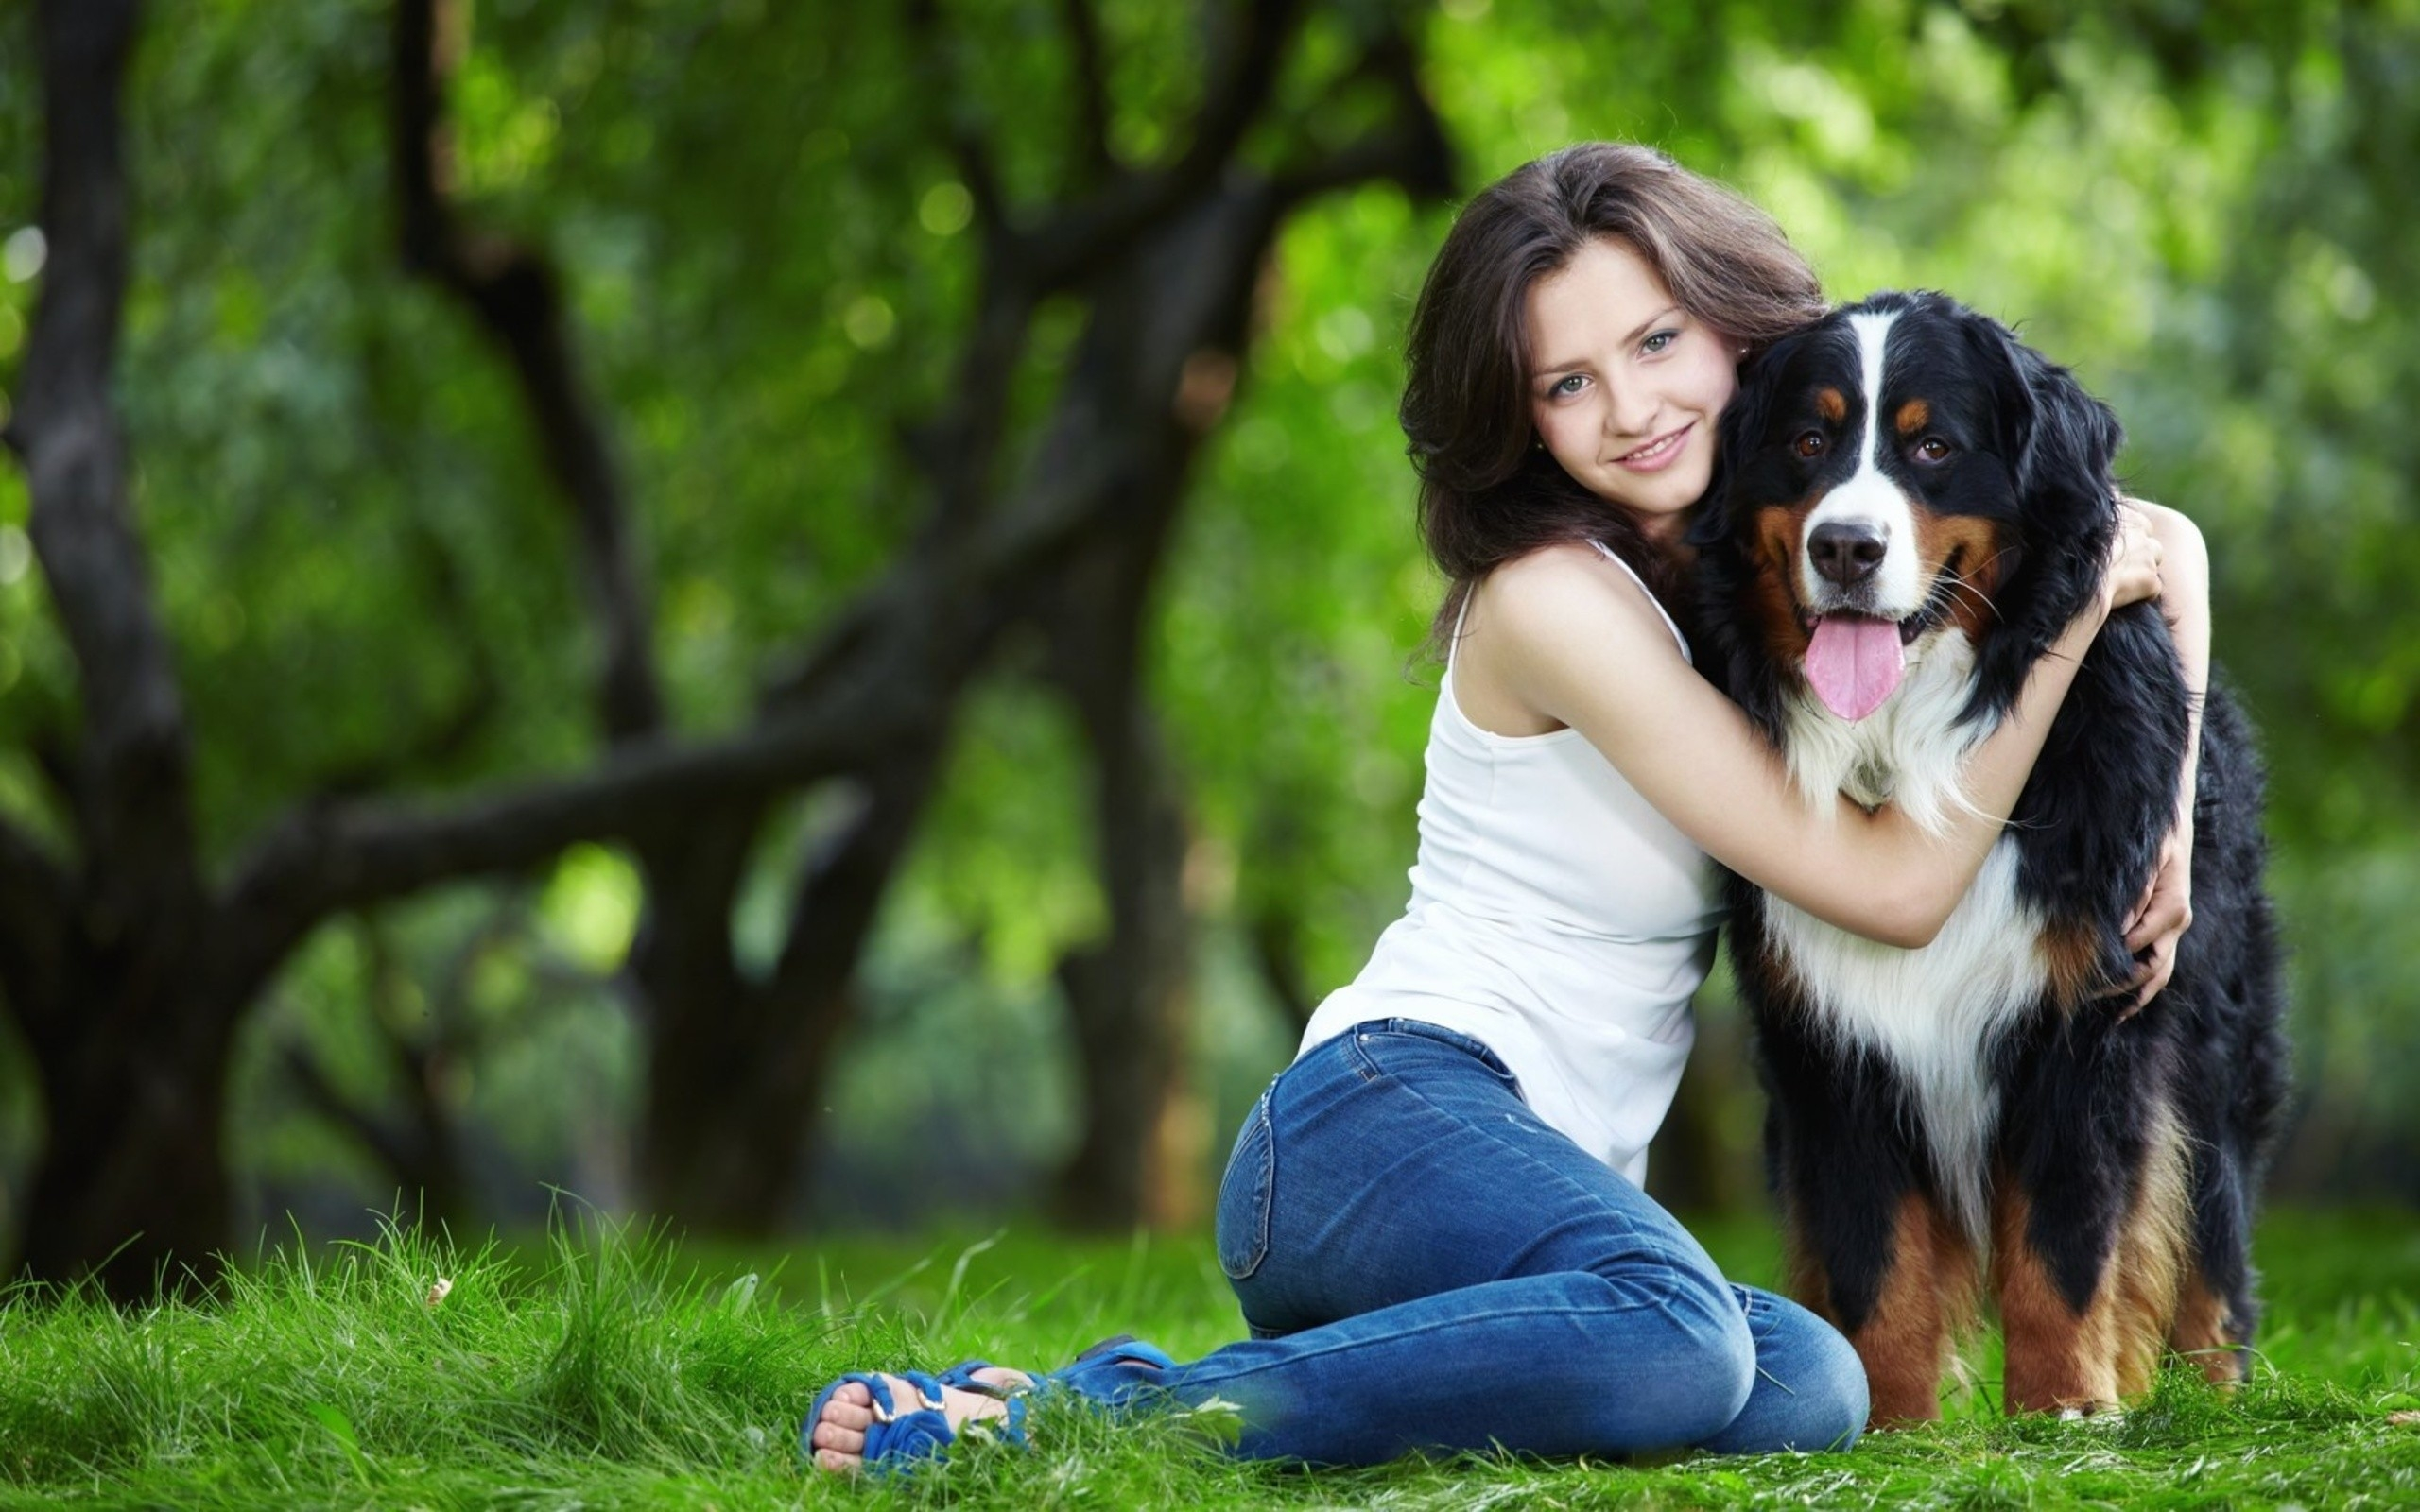 Girl with Dog in Park Wallpaper